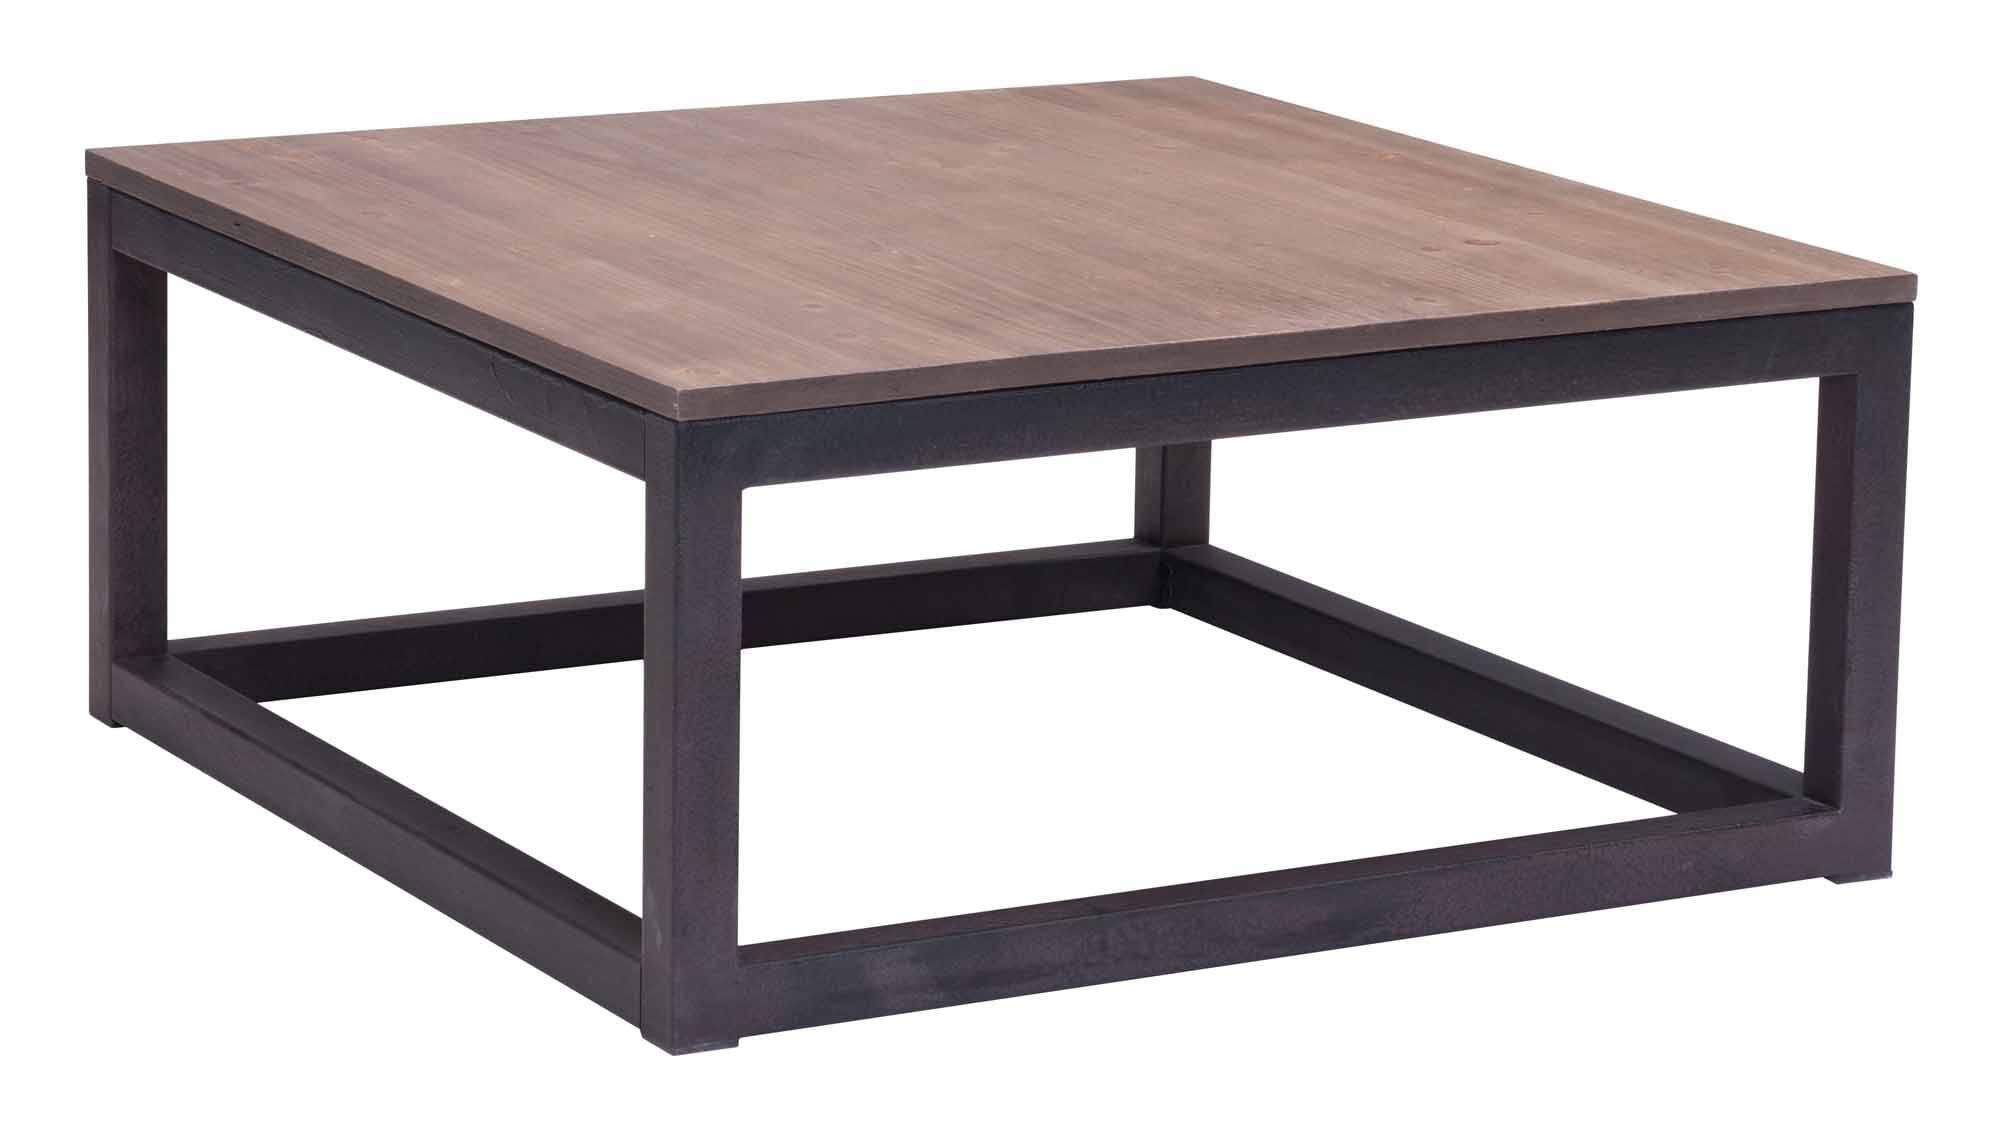 Civic Center Square Coffee Table Distressed Natural by Zuo